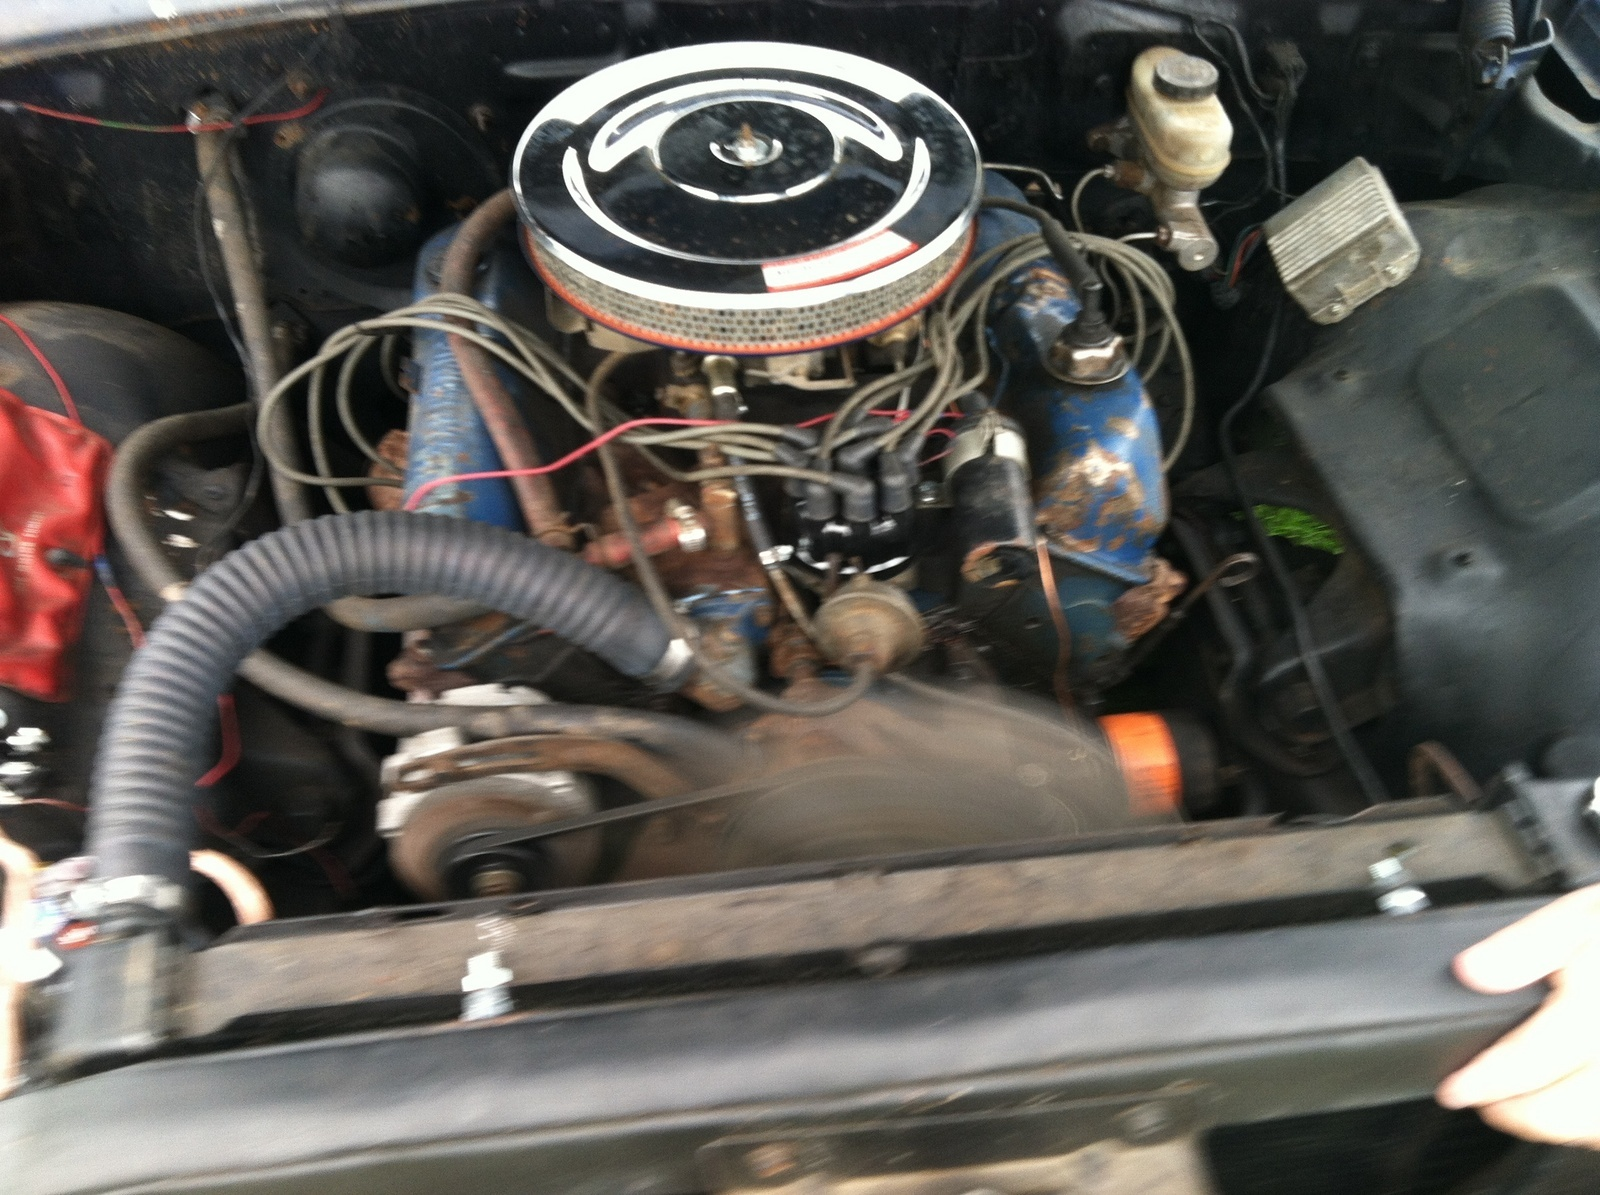 1964 ford fairlane wiring diagram 1986 f150 starter solenoid galaxie questions - i need to verify the engine in my 62 500. was told by l ...